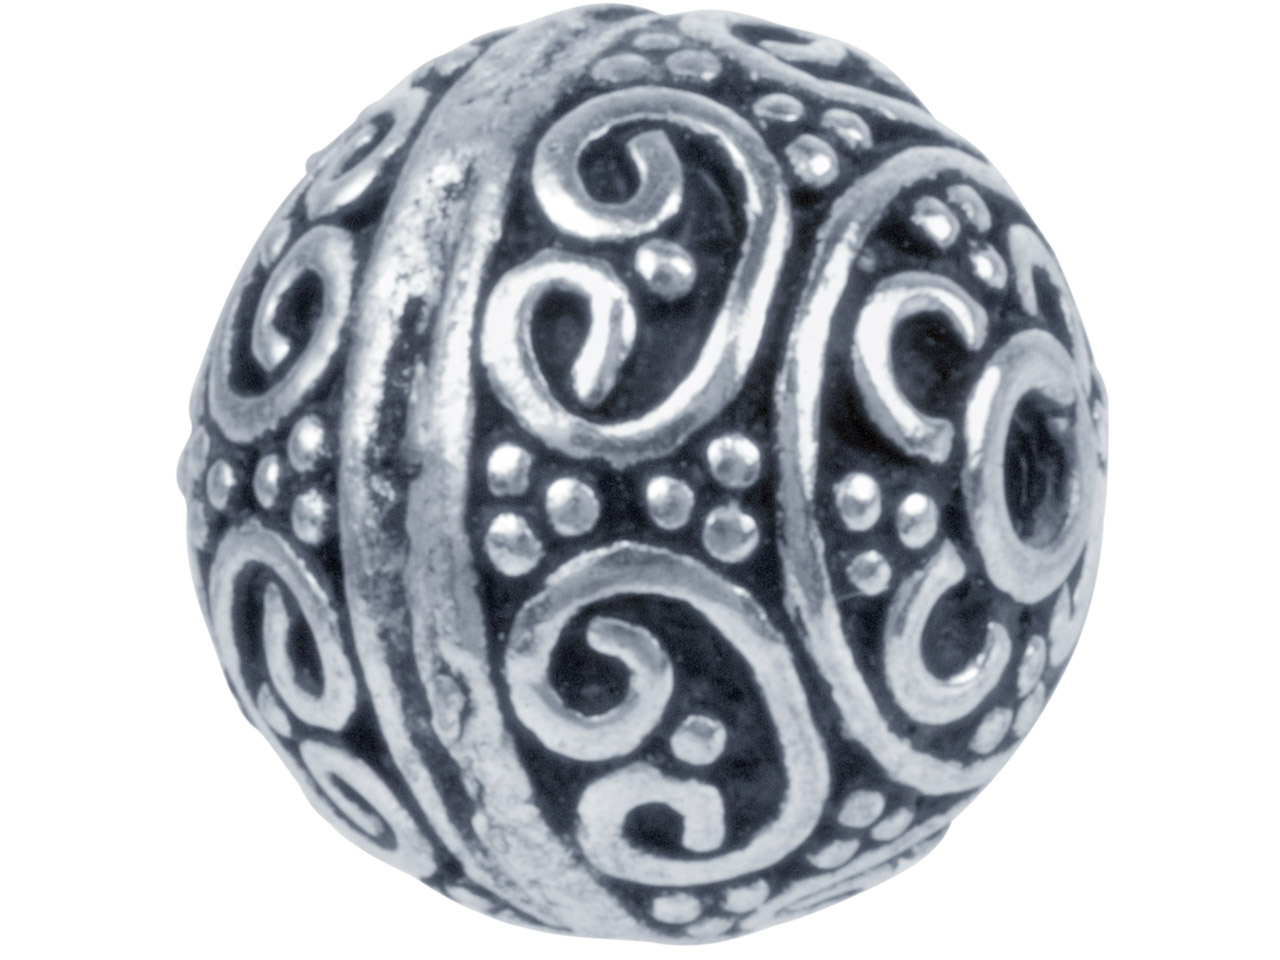 Silver Plated Delicate Swirls Round 10mm Beads, Pack of 10